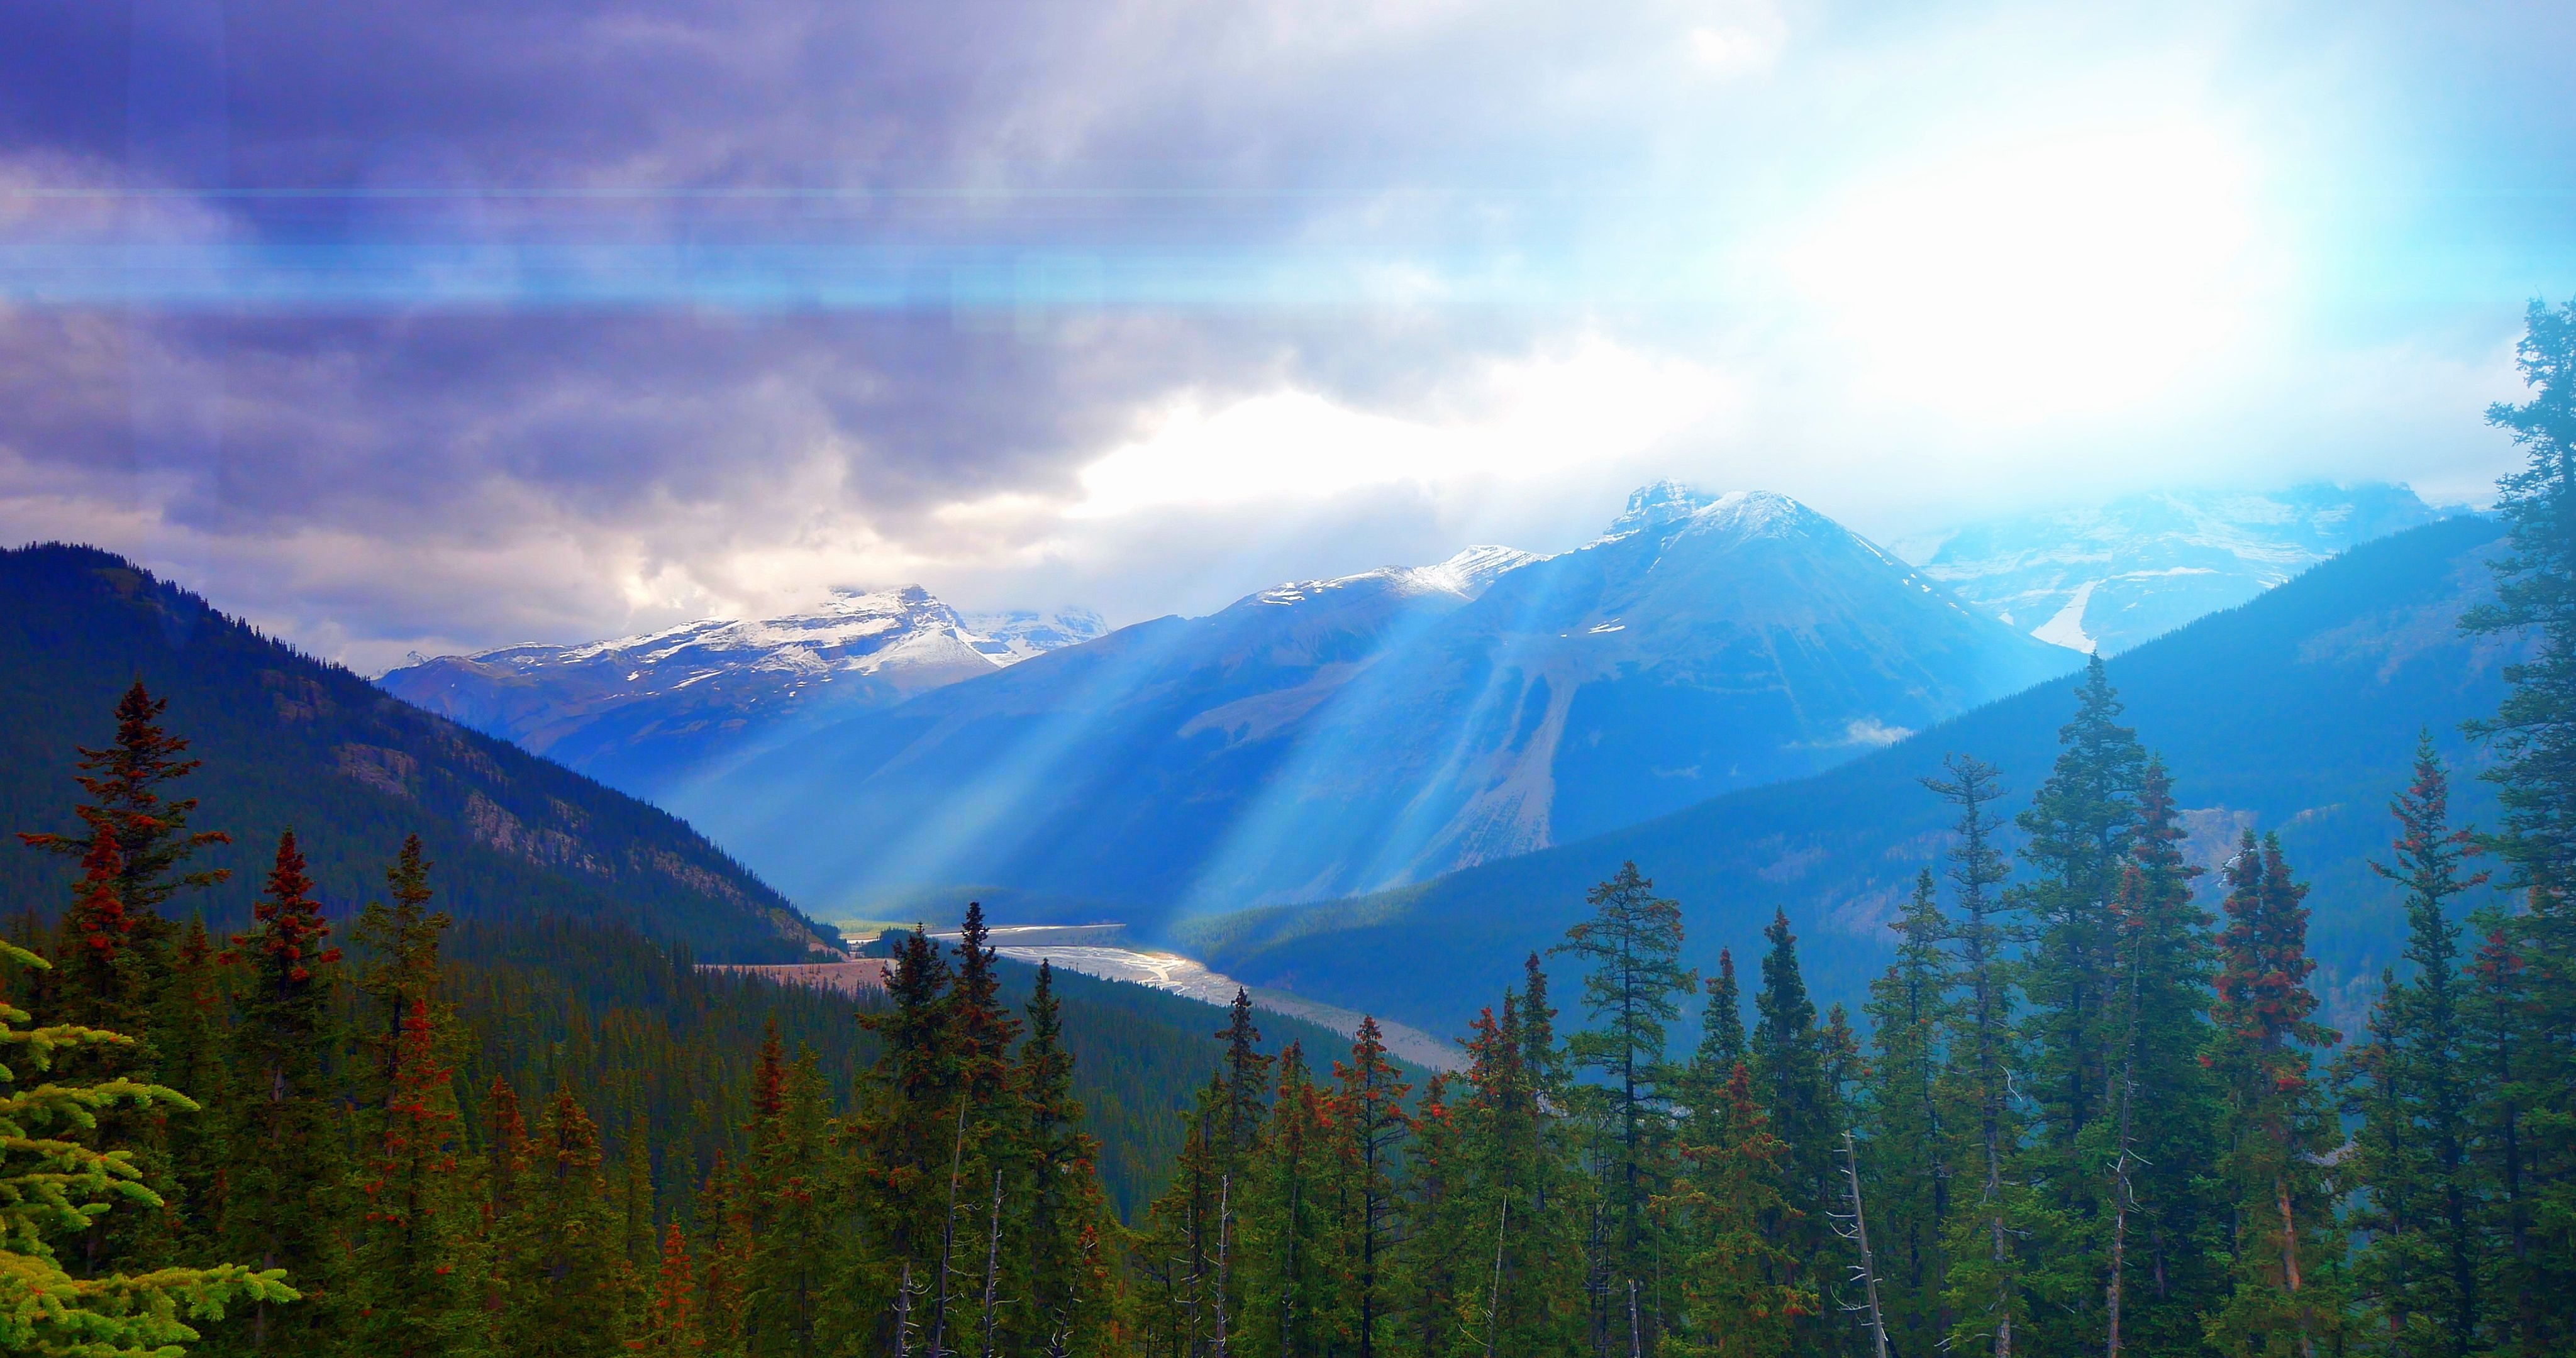 Sun Crepuscular Rays Sky Light Landscape Mountains Nature Beautiful Clouds View Stock Footage Sky Light Landscape Sun Landscape Sky Clouds